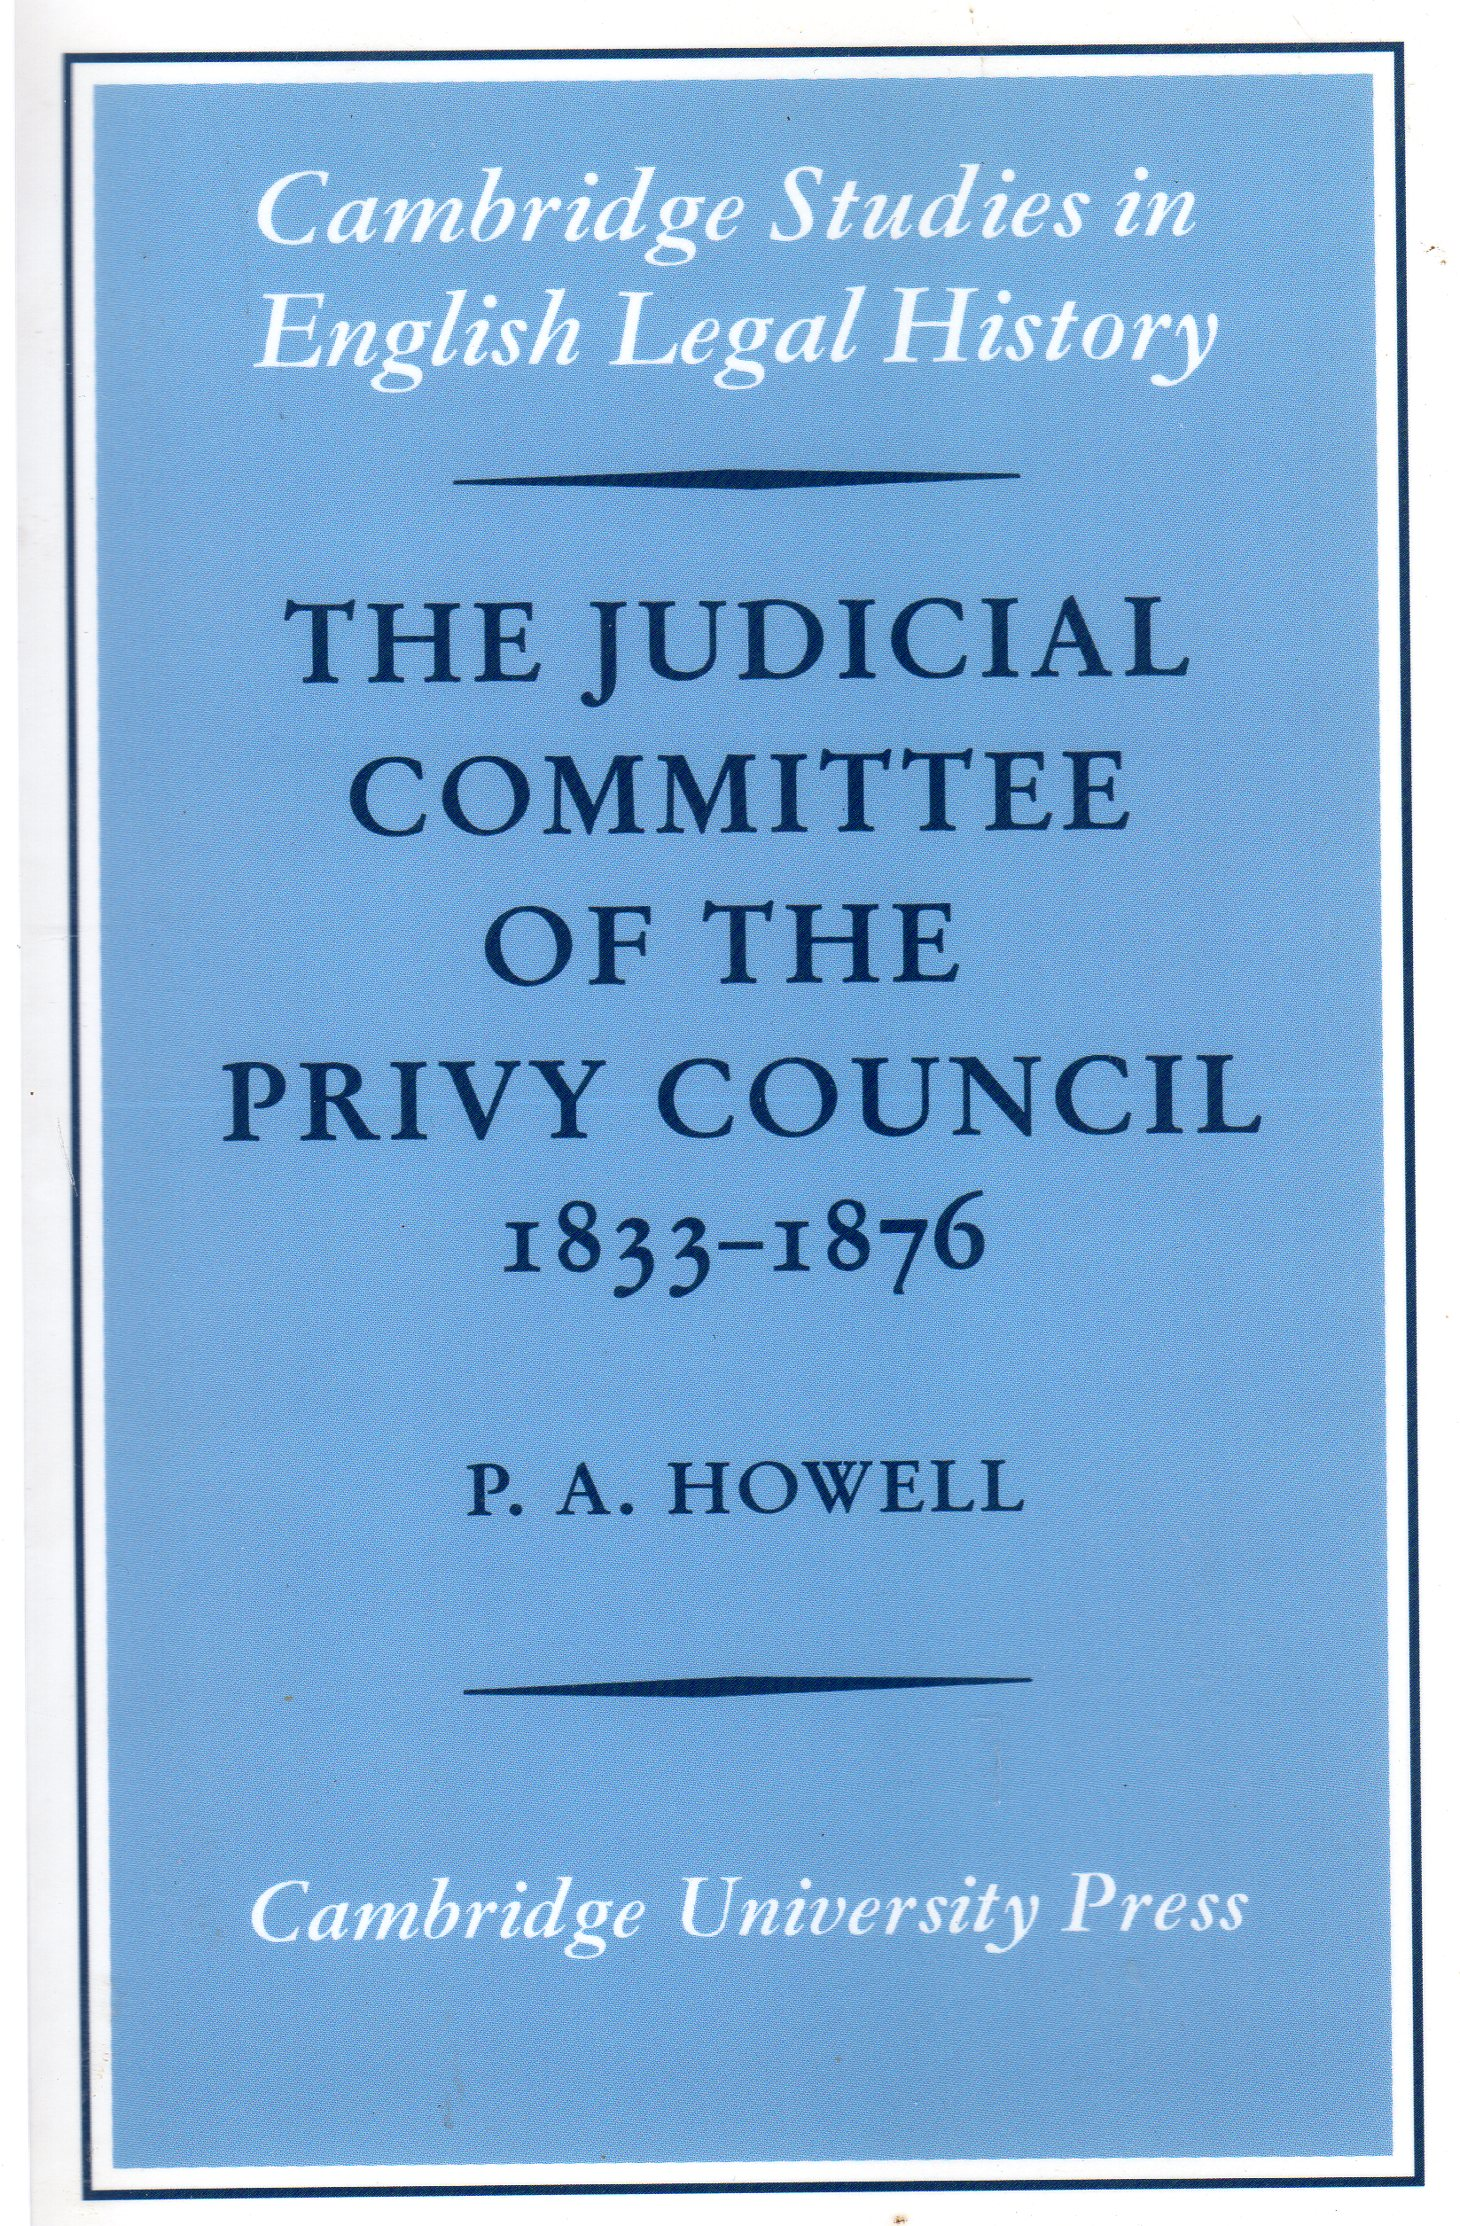 Image for The Judicial Committee of the Privy Council 1833-1876 : Its Origins, Structure and Development